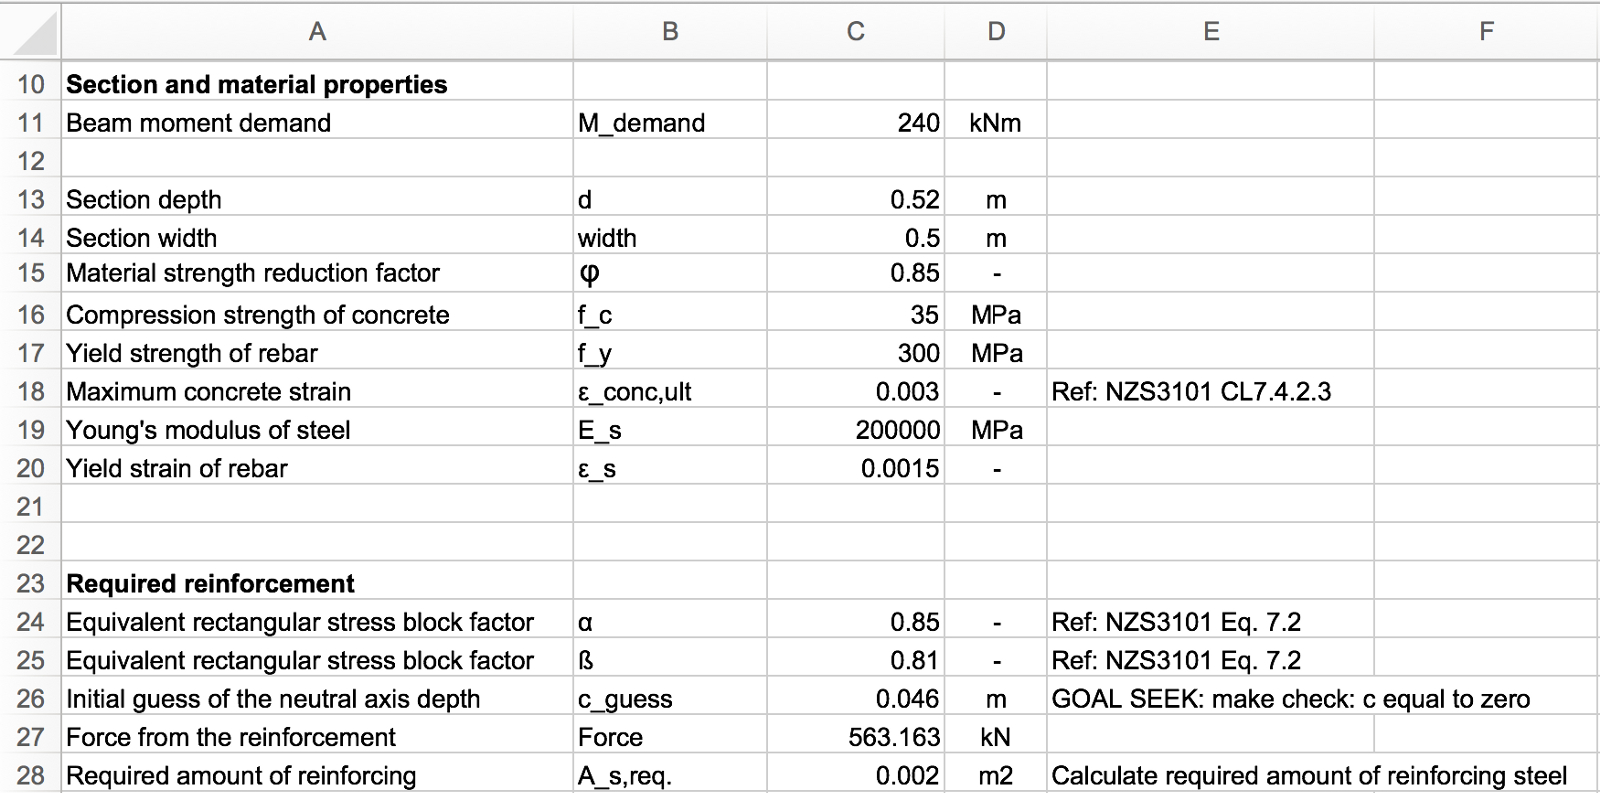 Spreadsheet Layout In The Do's And Don'ts Of Engineering Spreadsheets – Maxim Millen – Medium